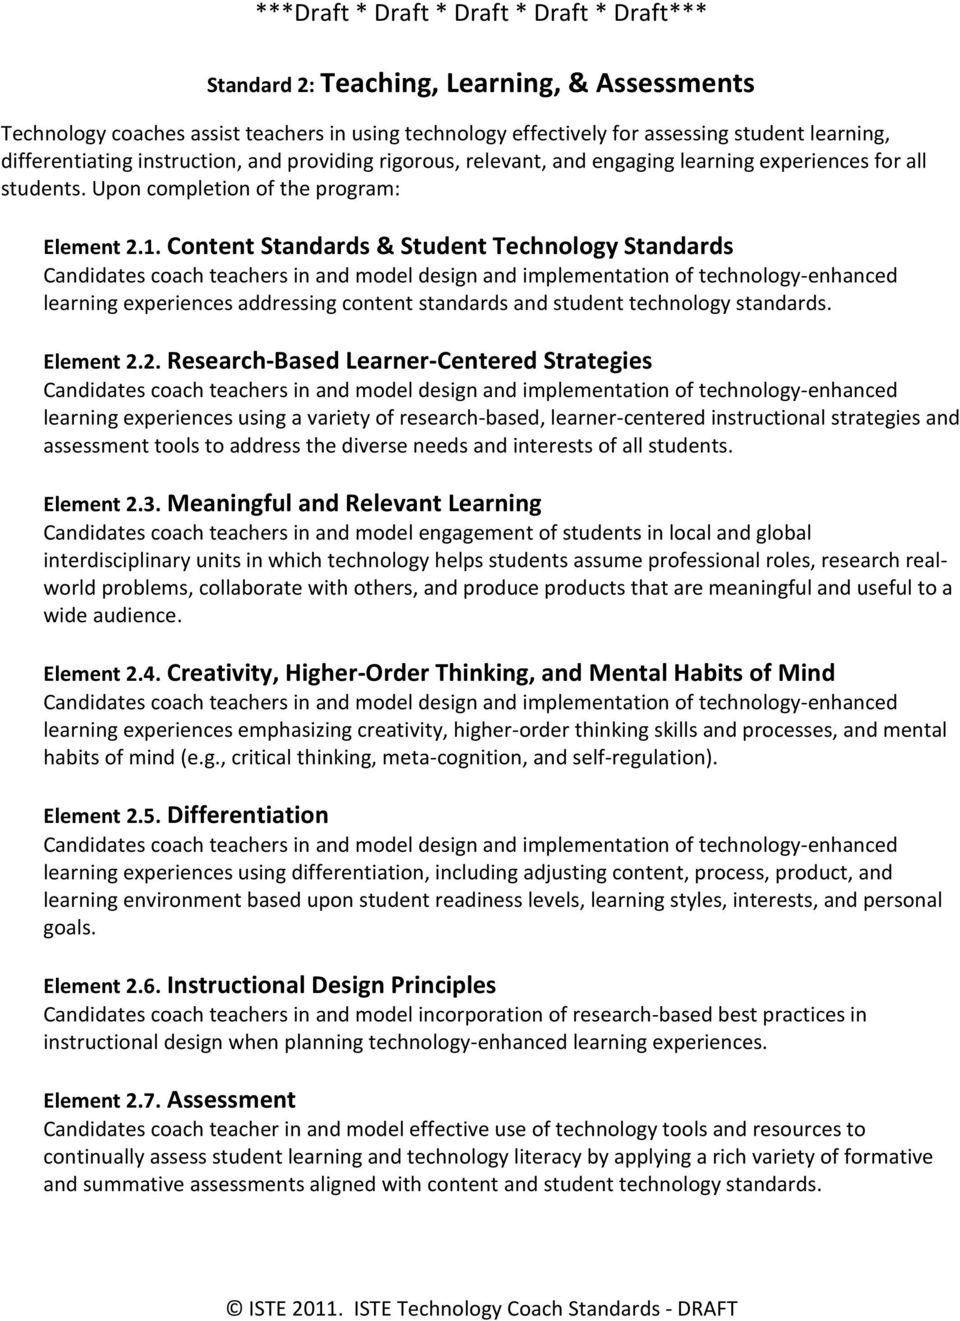 Content Standards & Student Technology Standards learning experiences addressing content standards and student technology standards. Element 2.